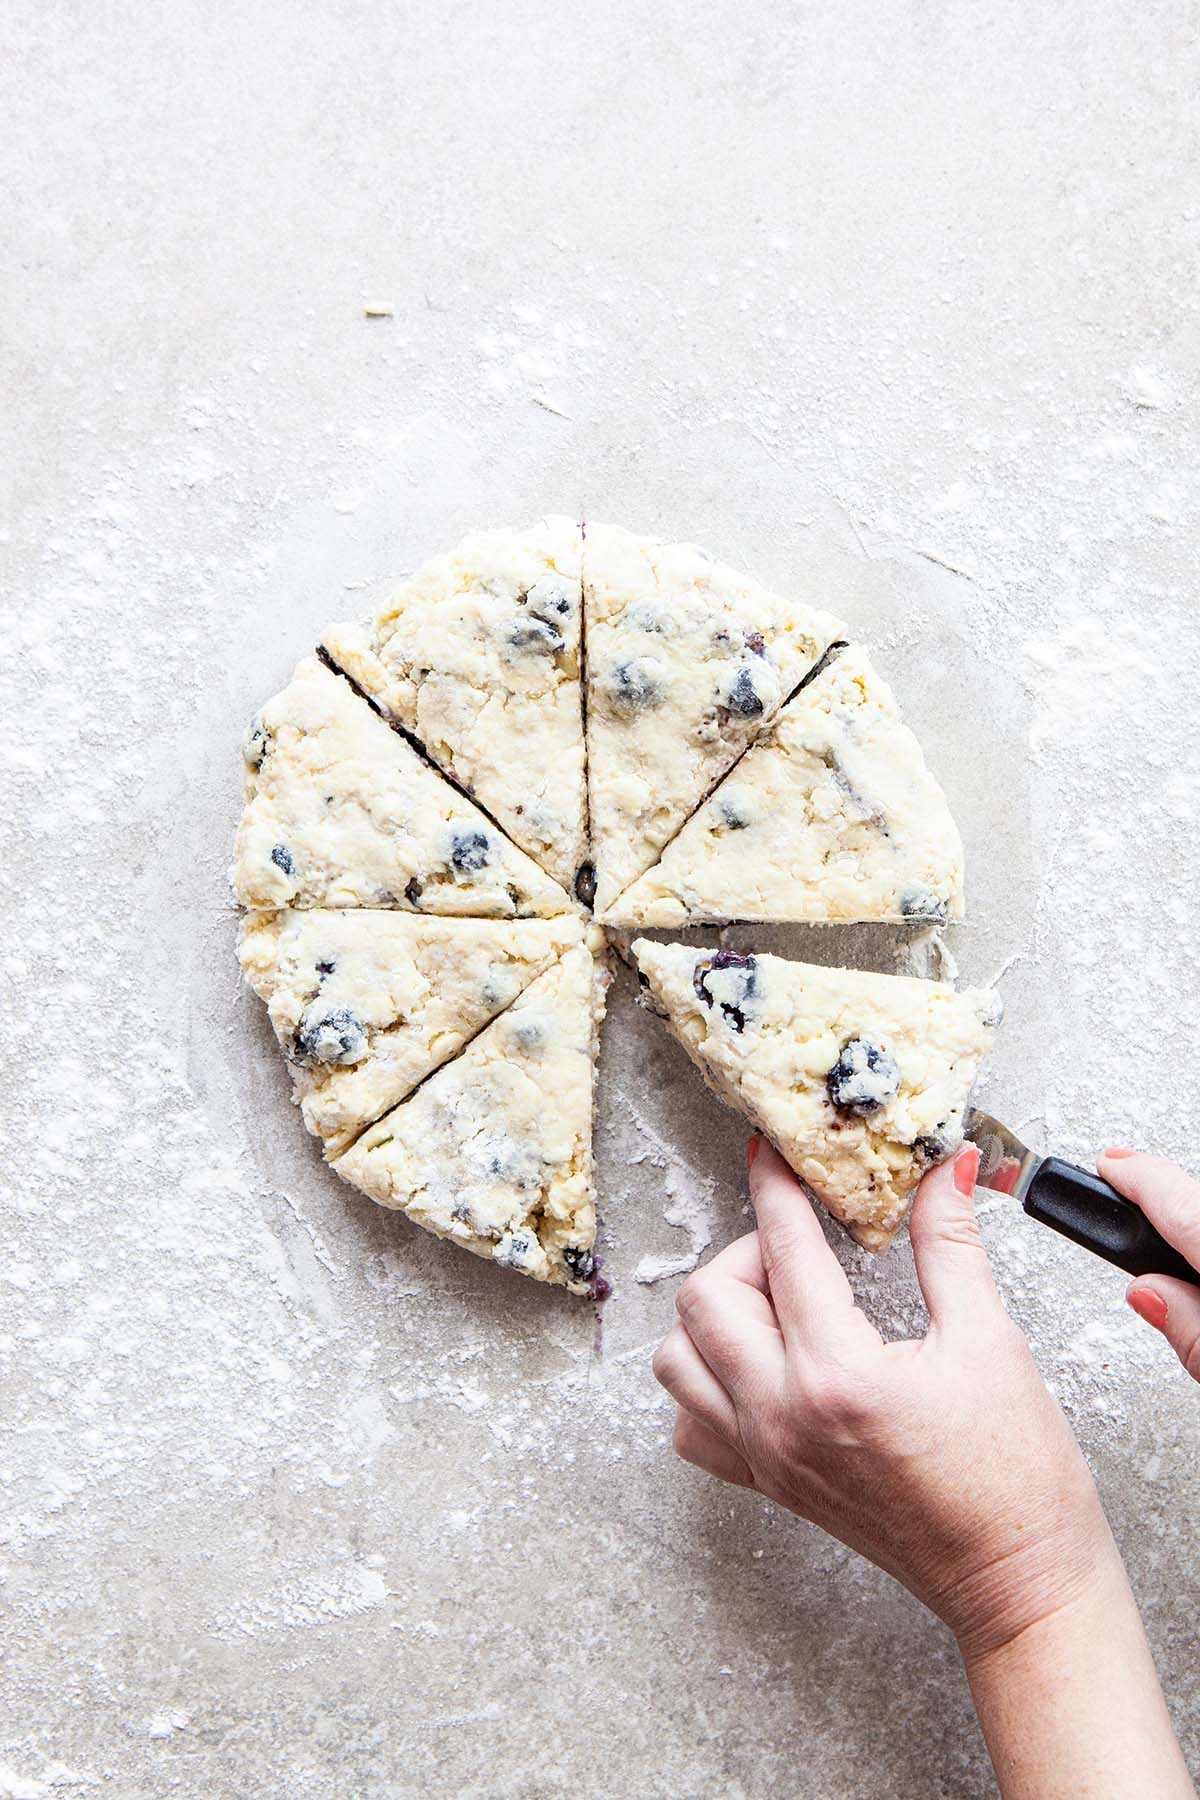 Two hands using an offset spatula to lift a wedge of scone dough from a floured stone surface.